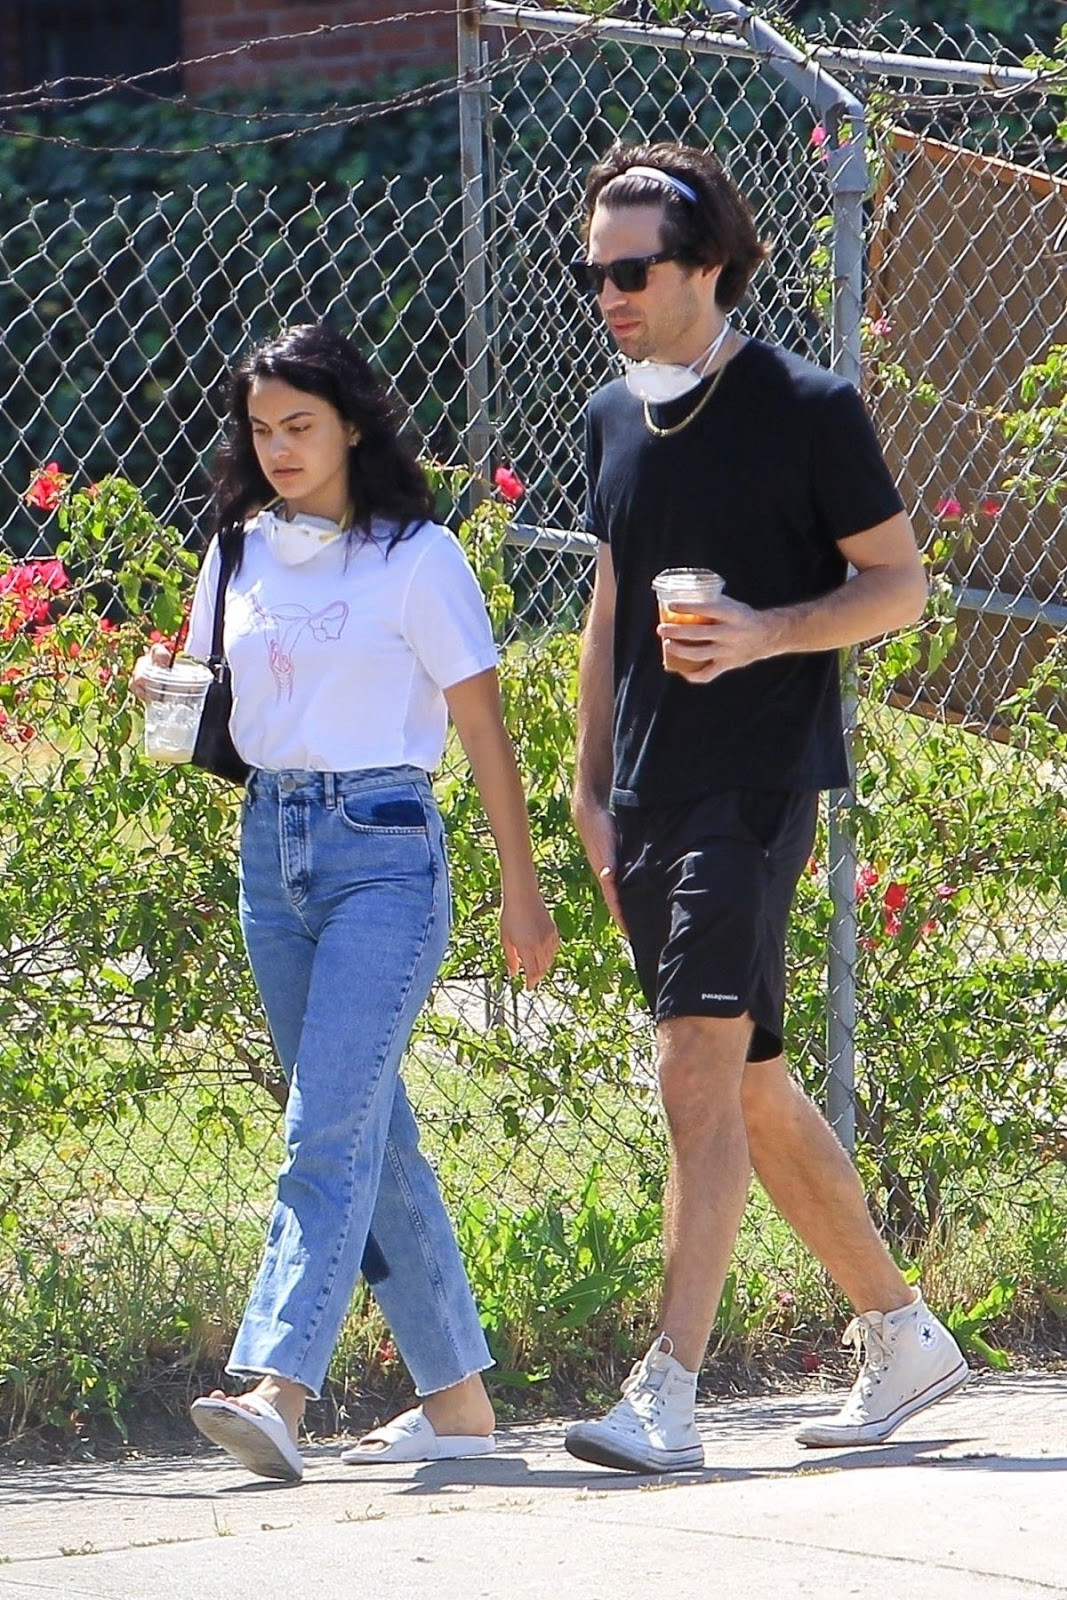 Camila Mendes Out and About in Los Angeles, 05.08.2020 2